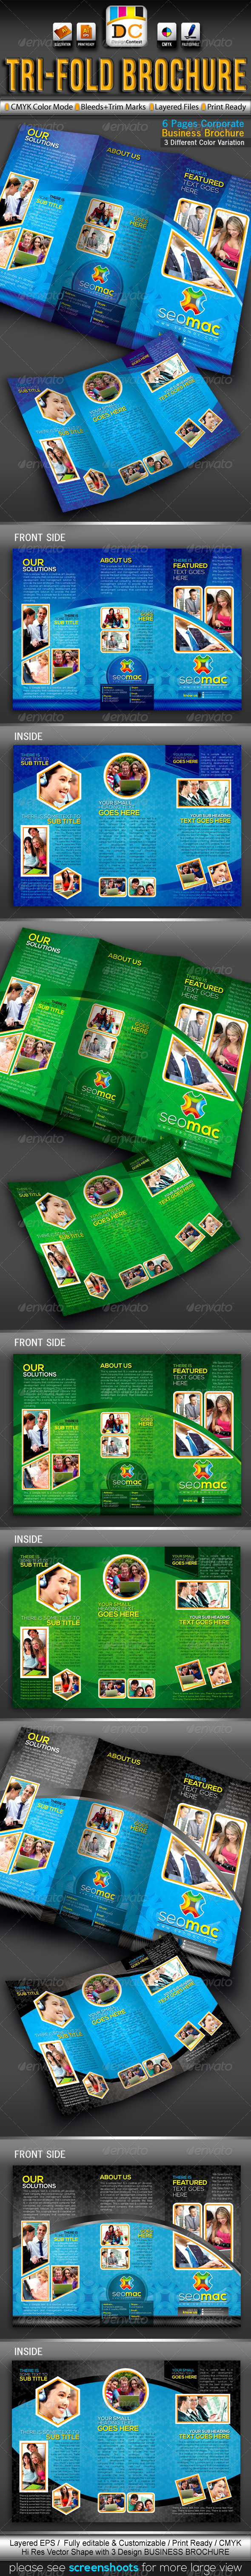 GraphicRiver SeoMac Tri-fold Corporate Business Brochure 3367247